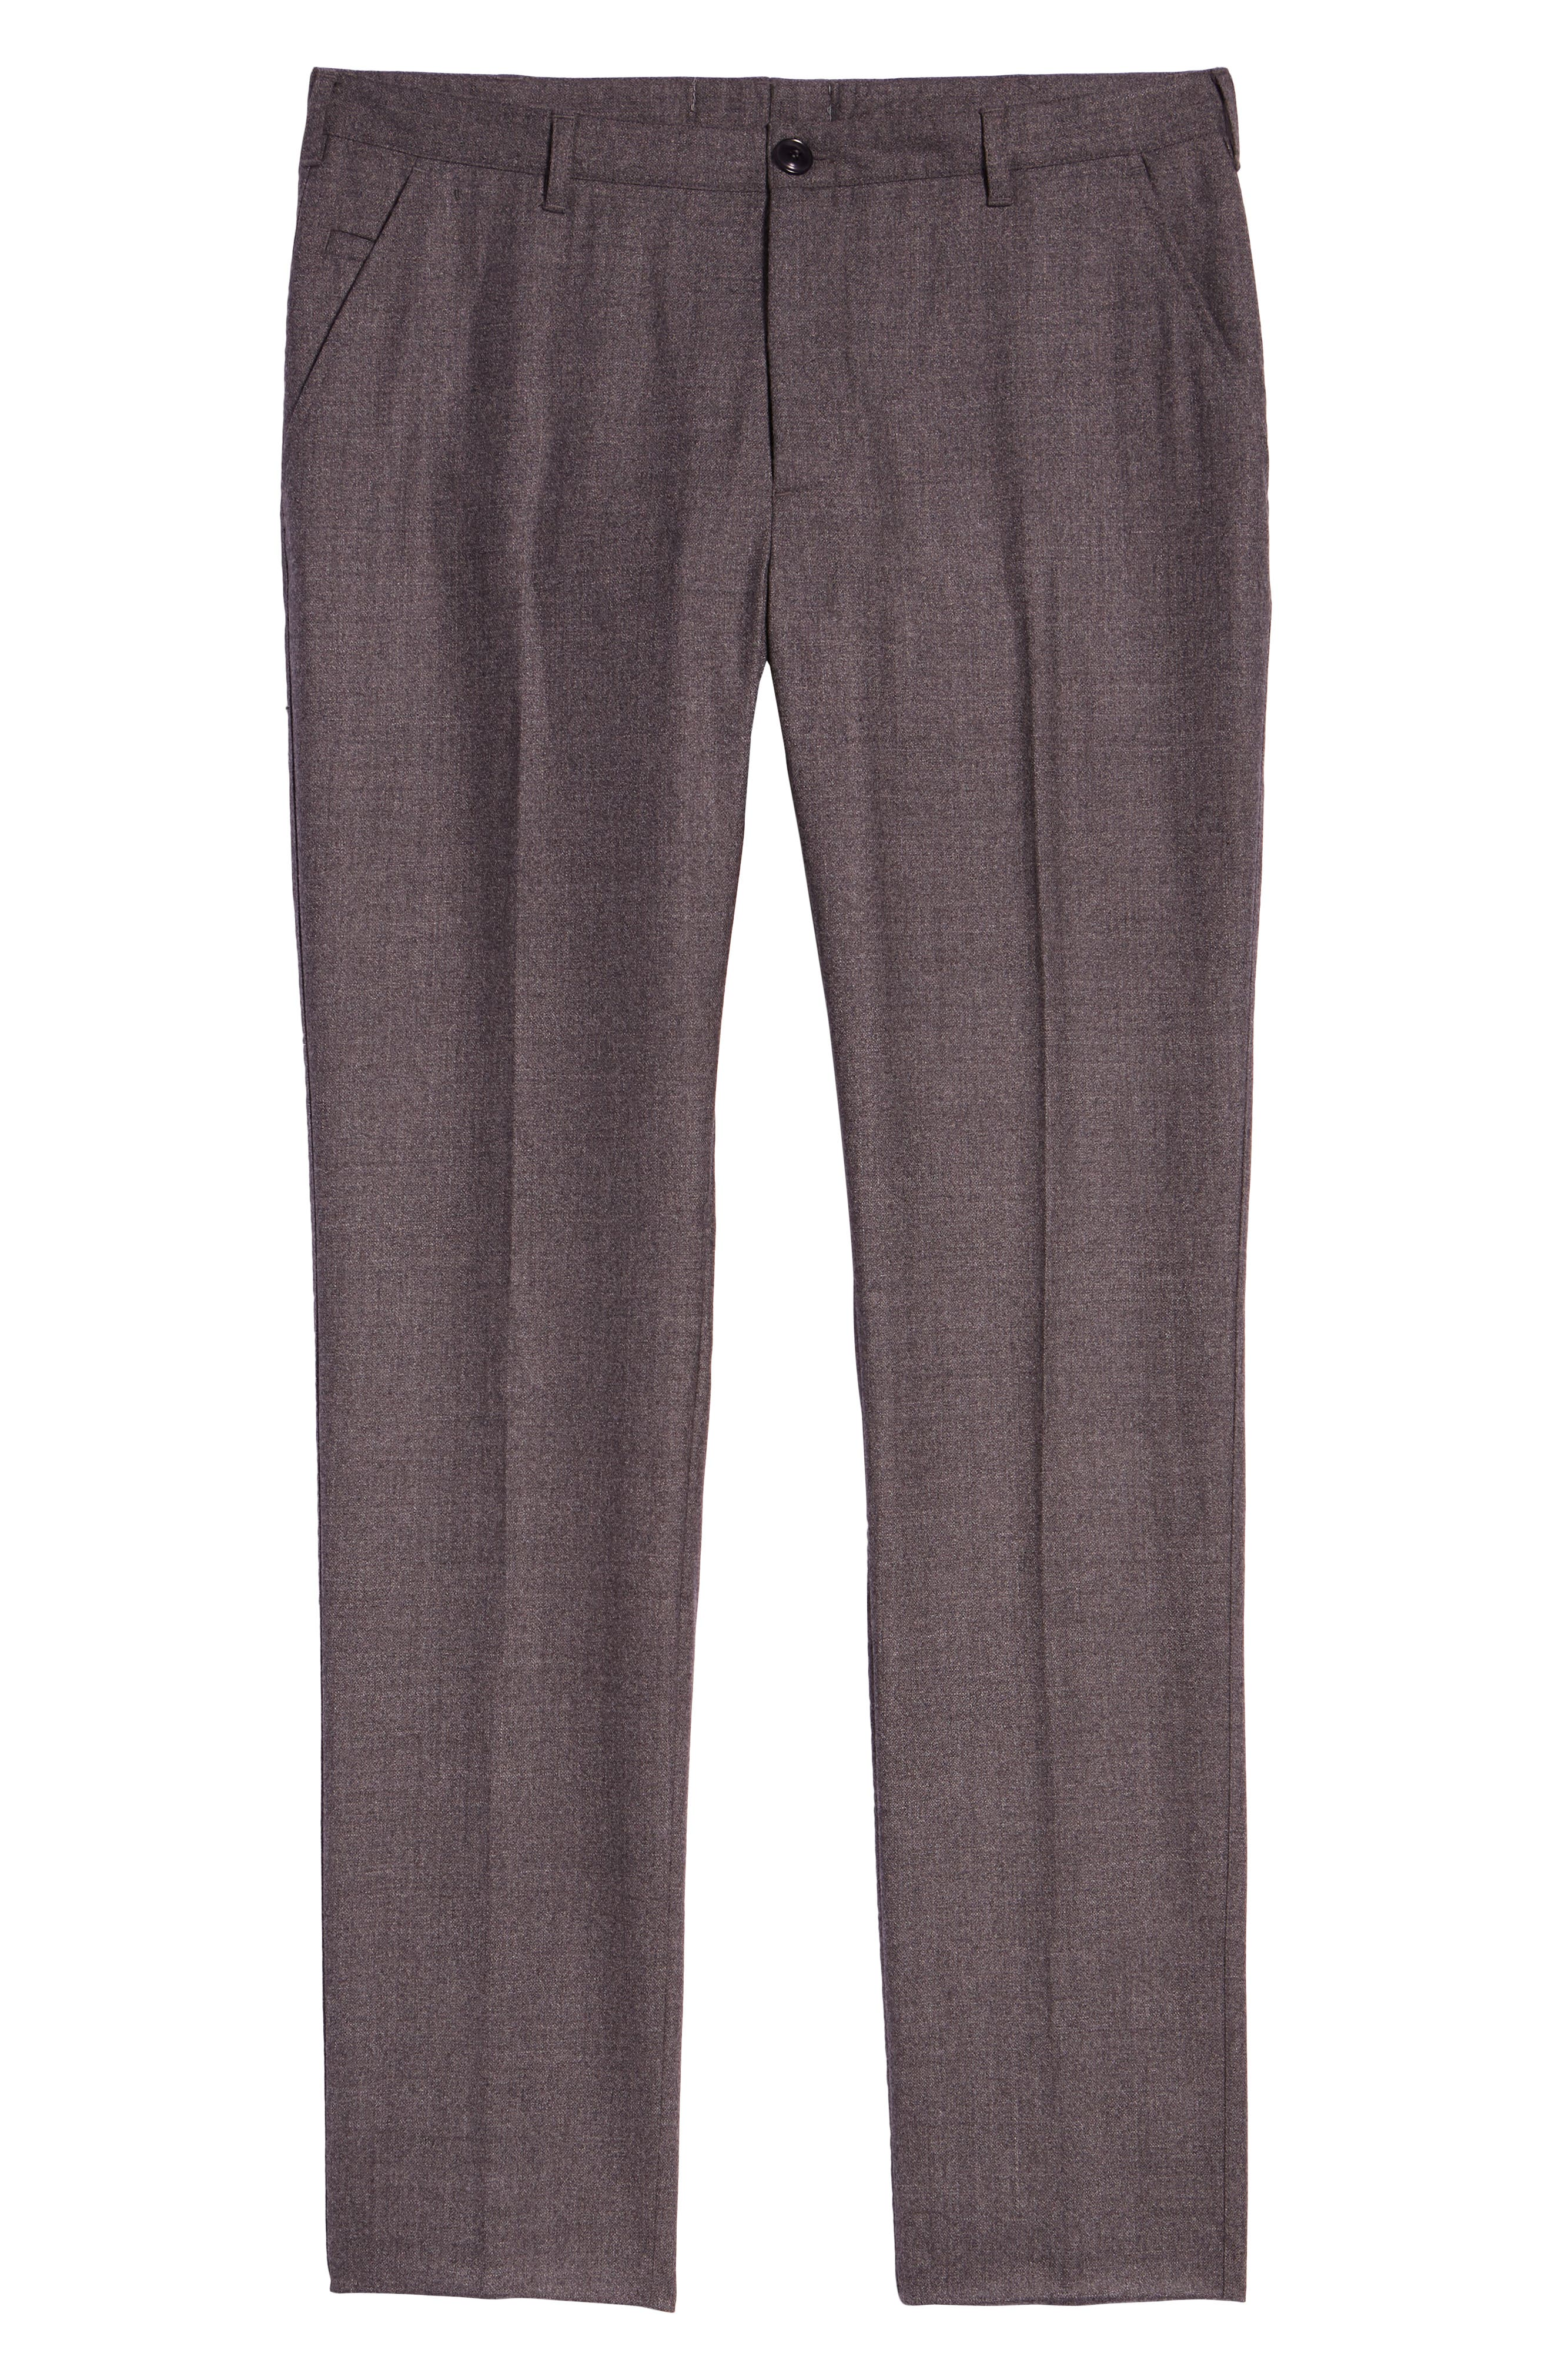 Flat Front Mélange Wool Extra Trim Fit Trousers,                             Alternate thumbnail 6, color,                             GREY